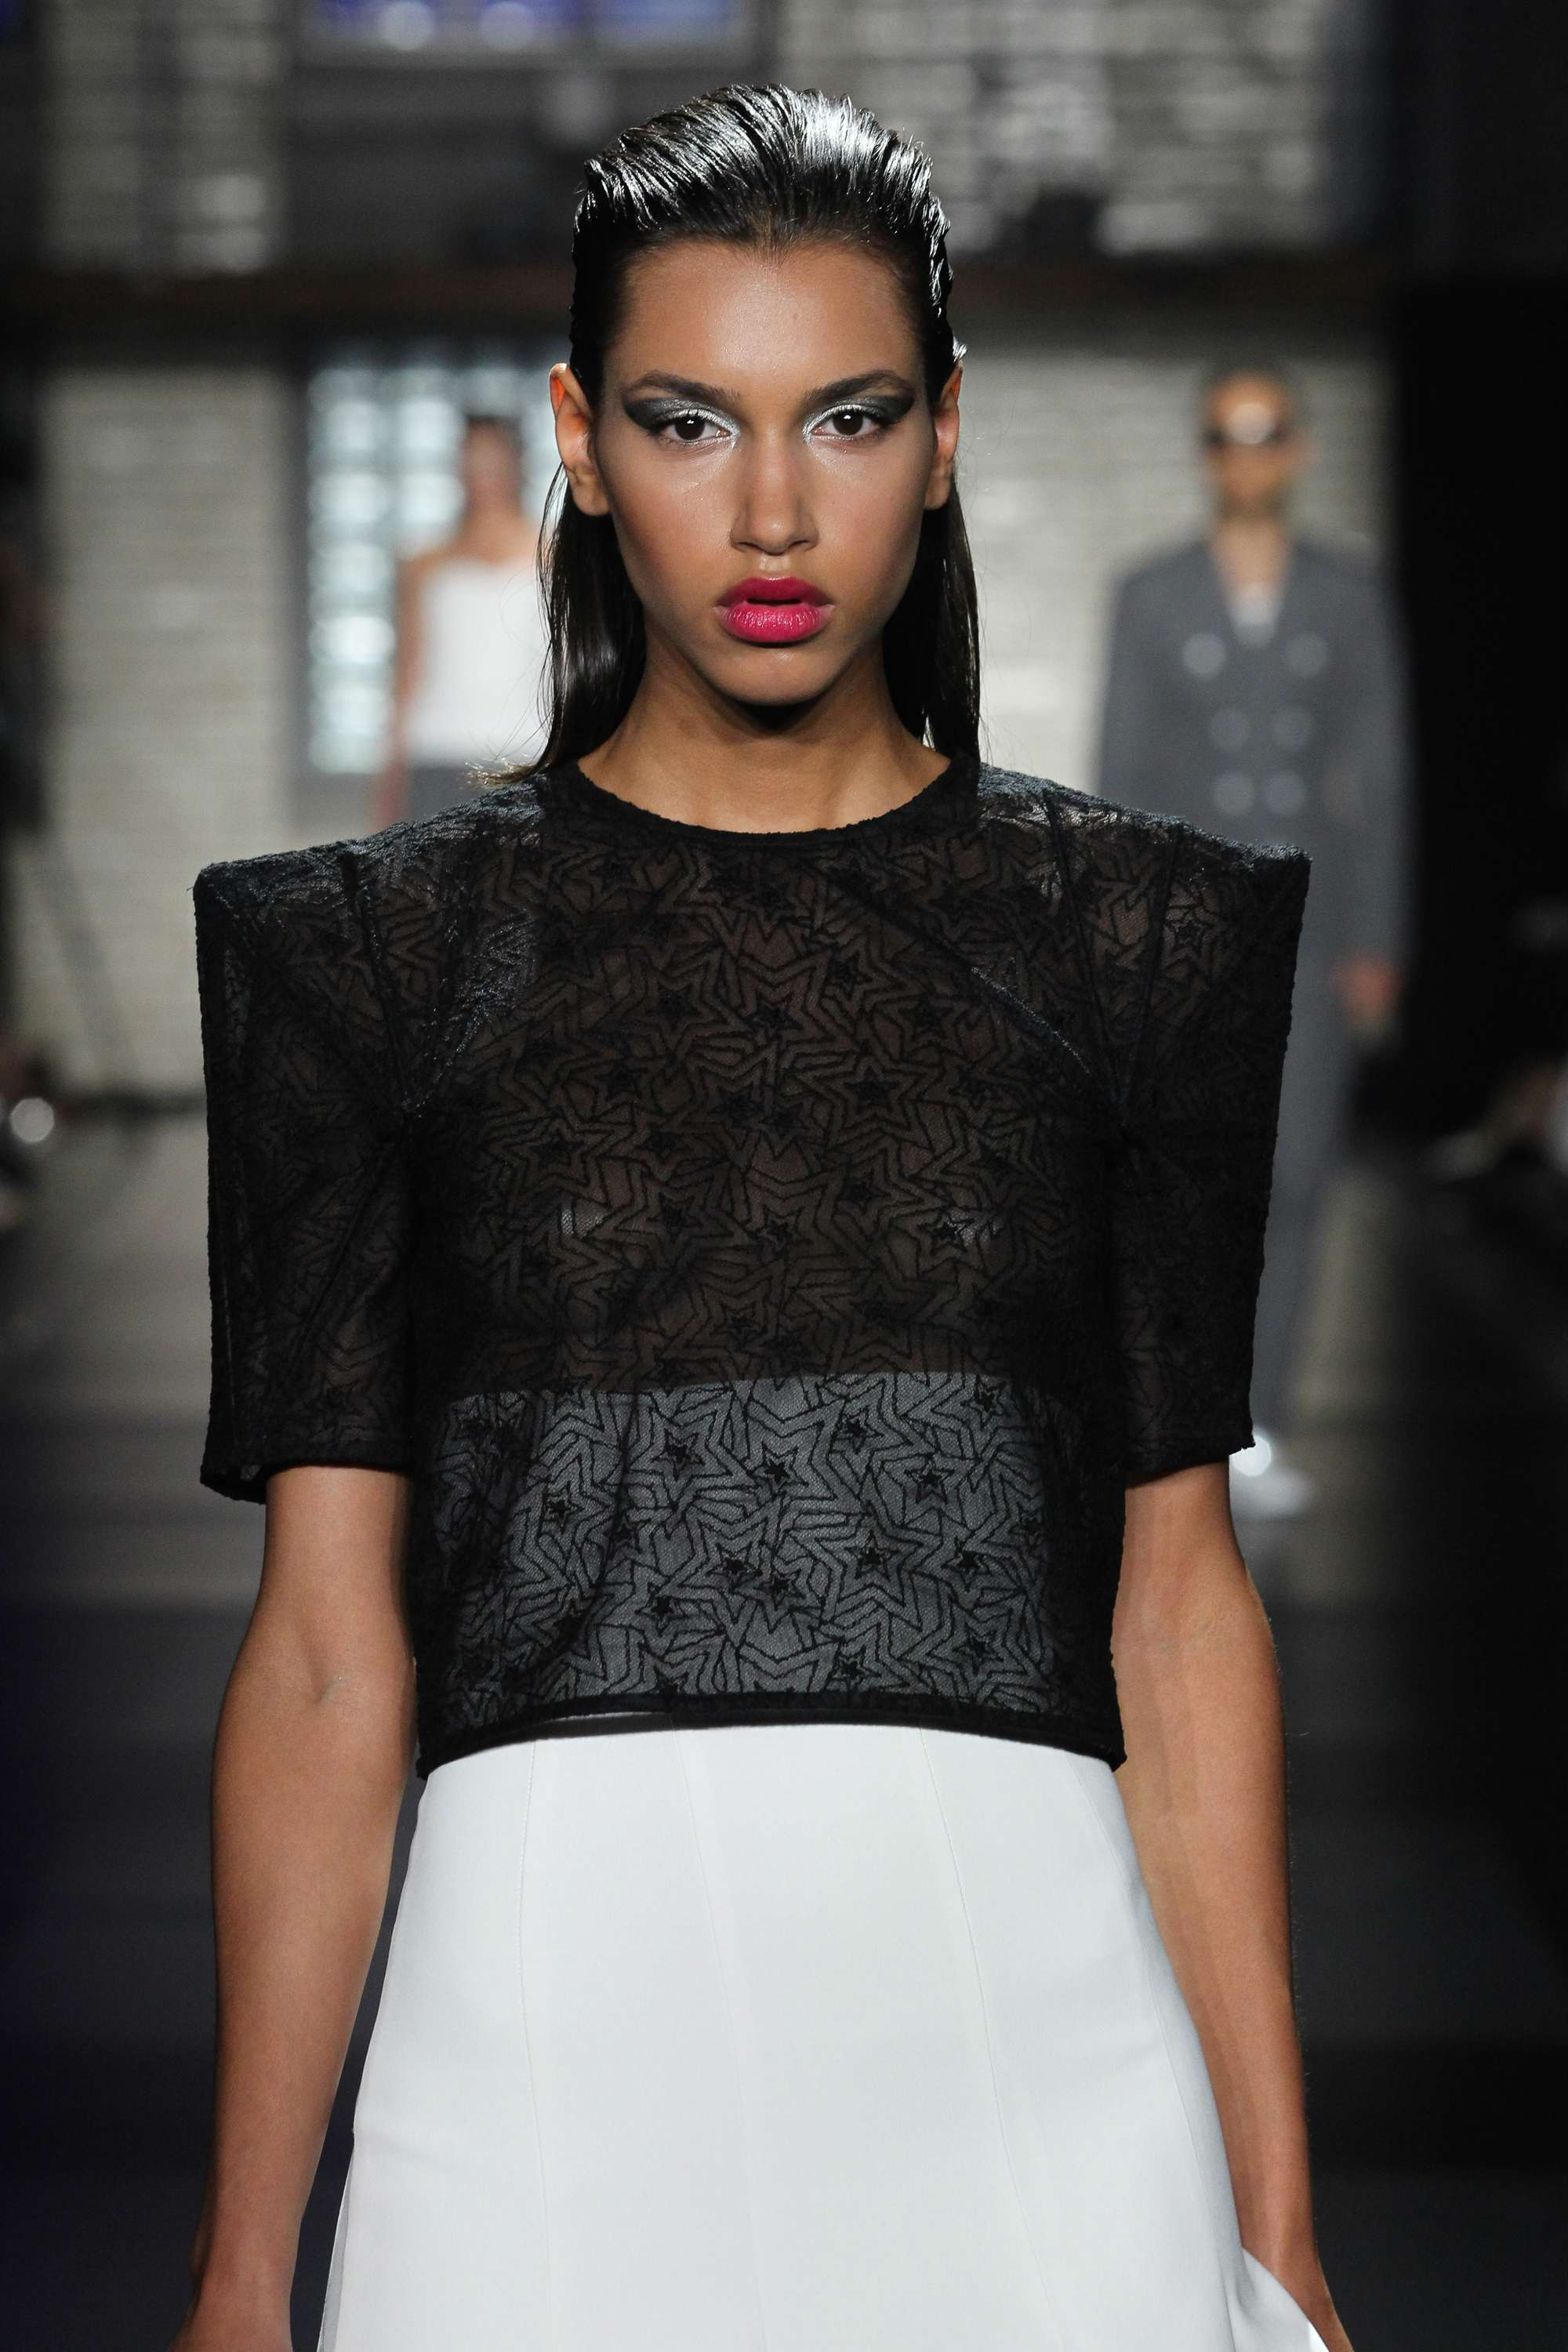 Ideas for crazy hair day: Runway model with dark brunette wet look slicked back hair